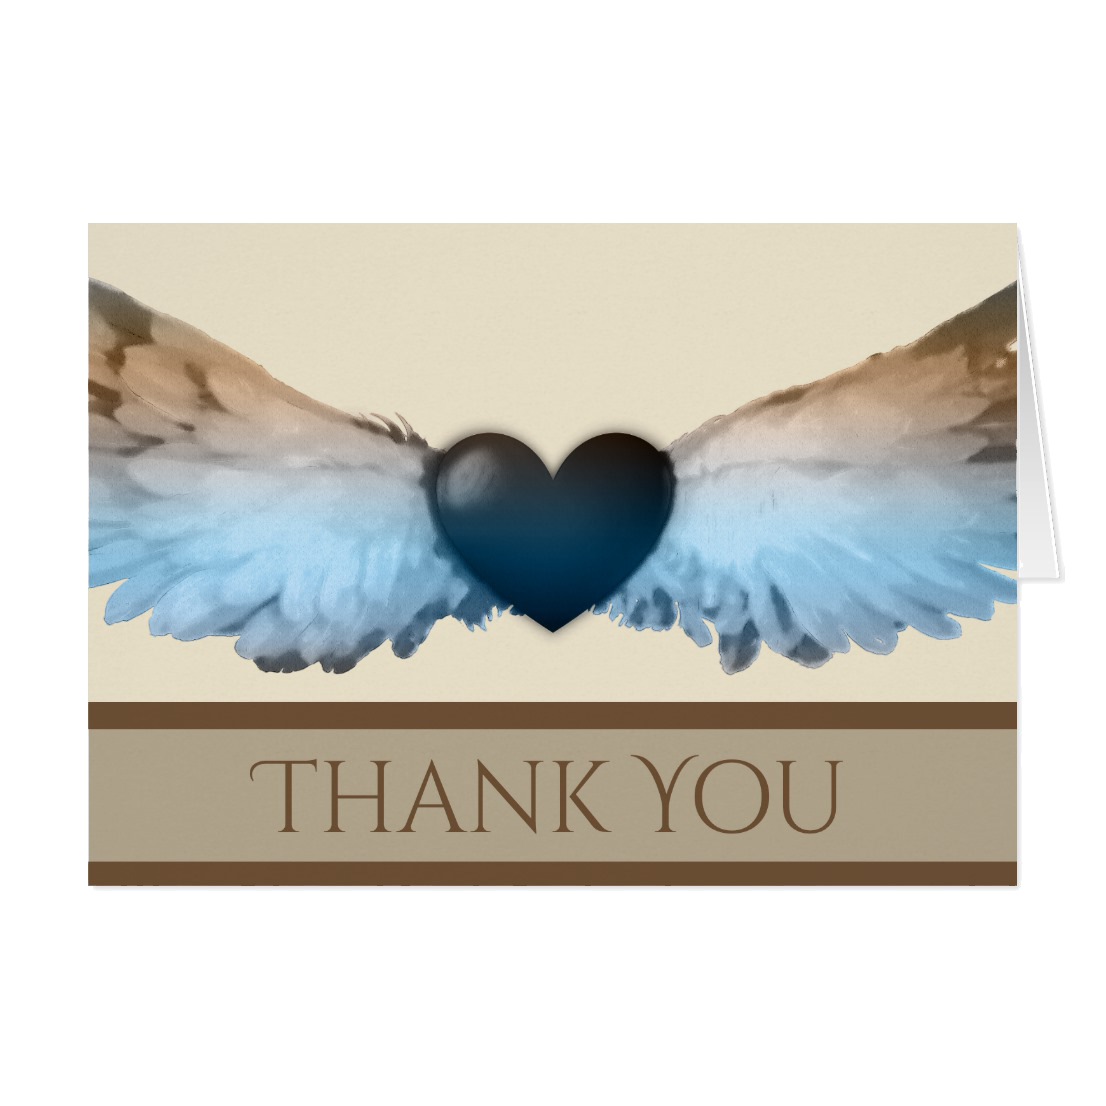 watercolor angel wings heart thank you note card - Thank You Note Cards